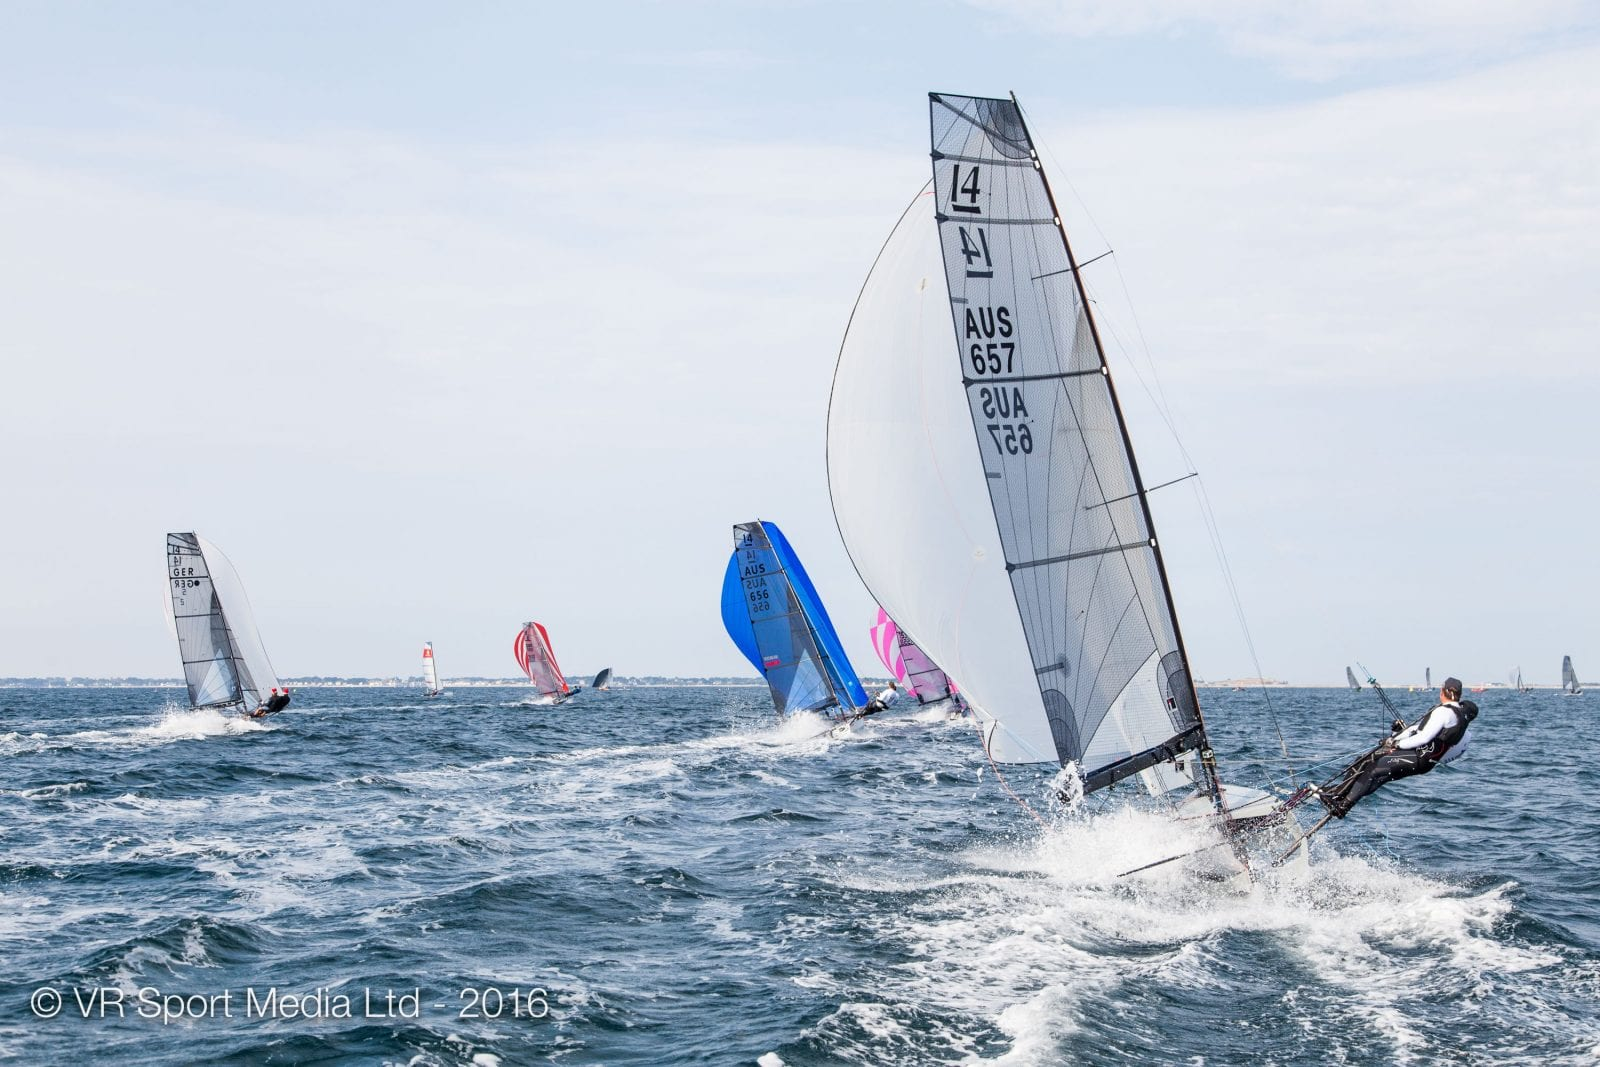 Video – VRSport.tv I14 Worlds Day 1